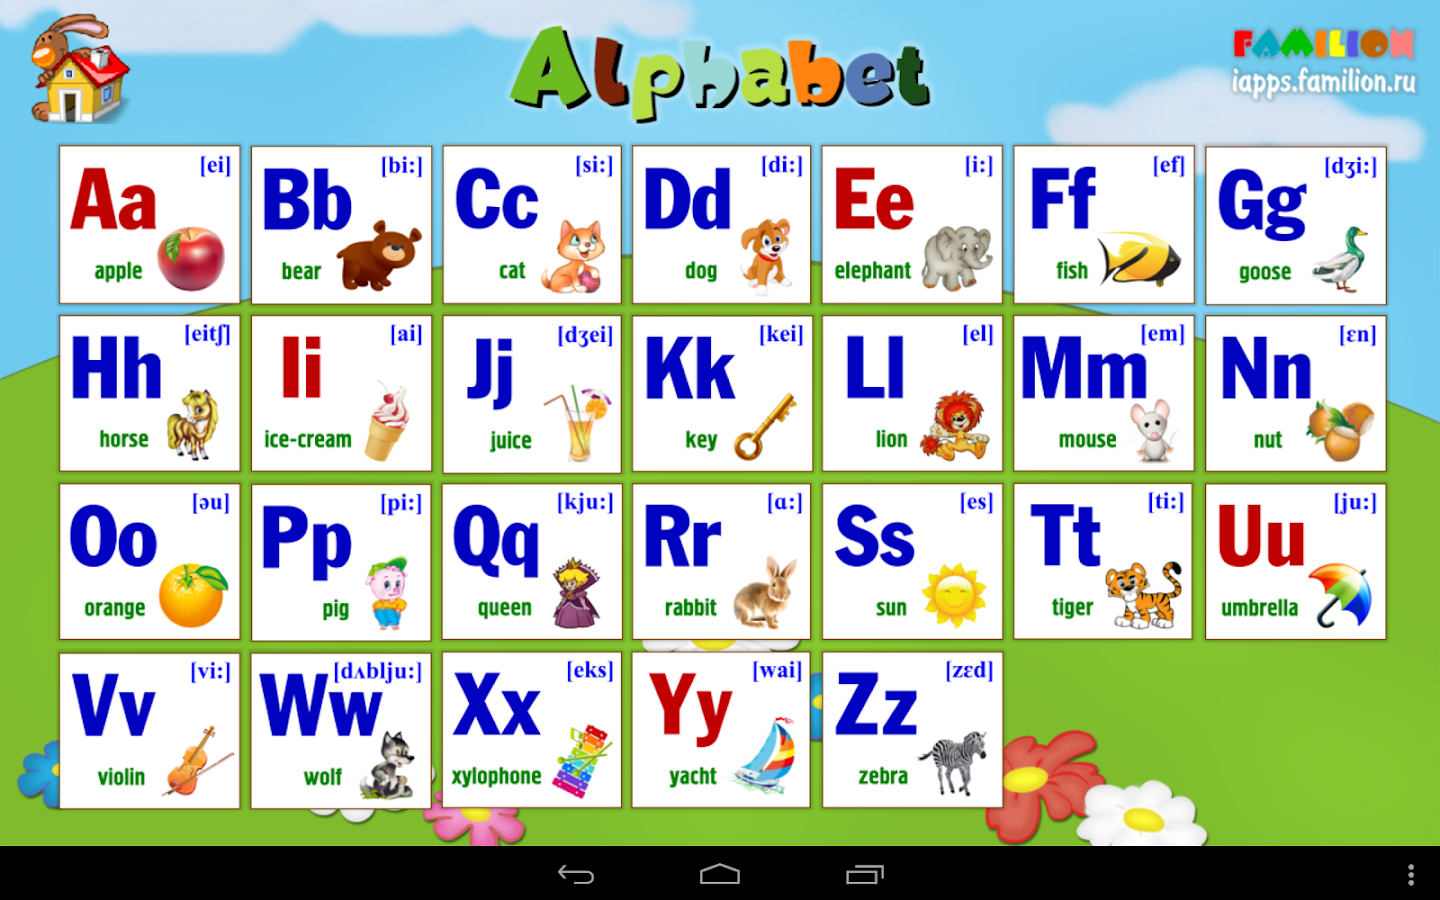 V deo de the english alphabet song